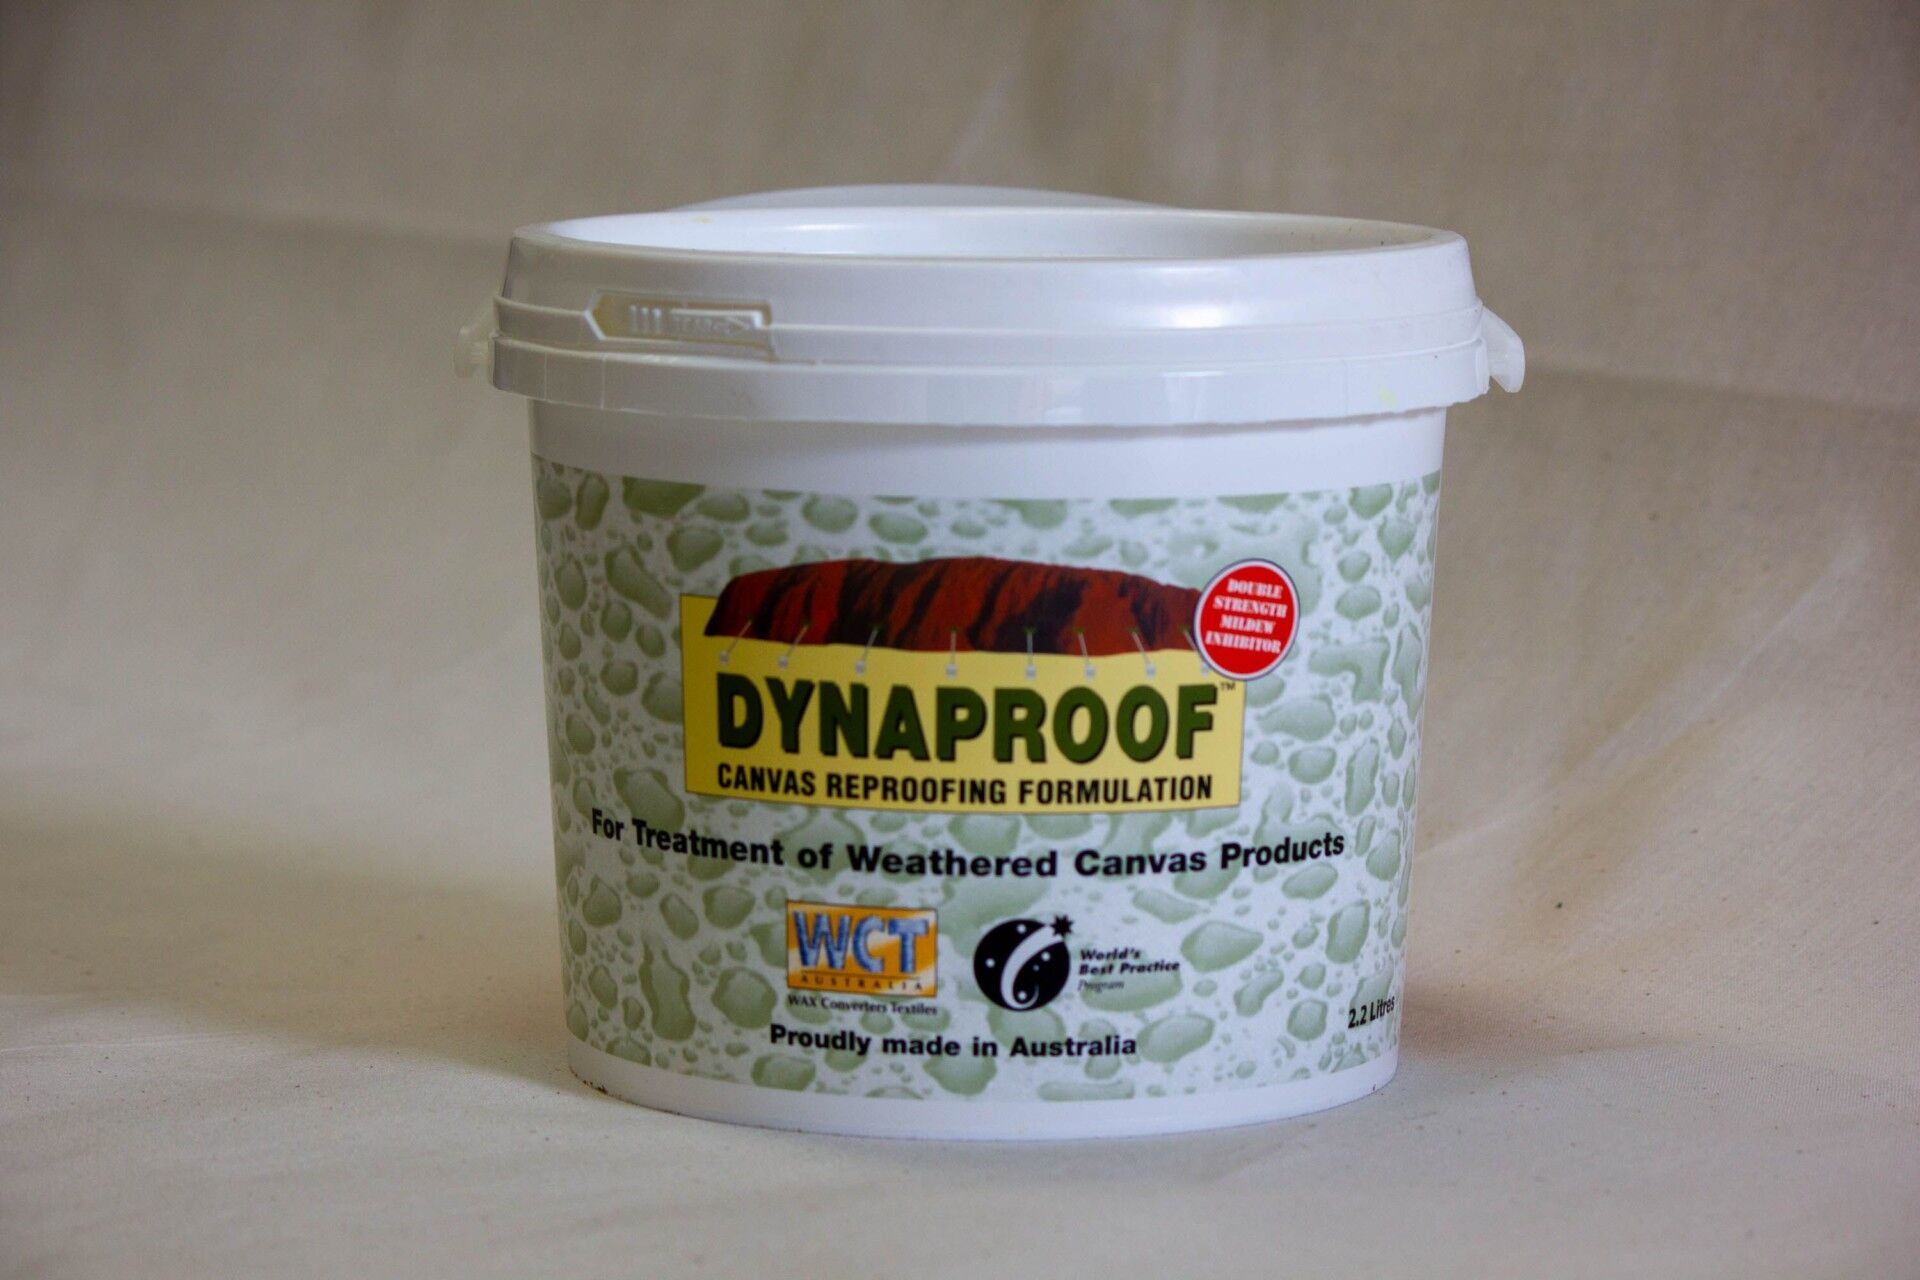 Dynaproof